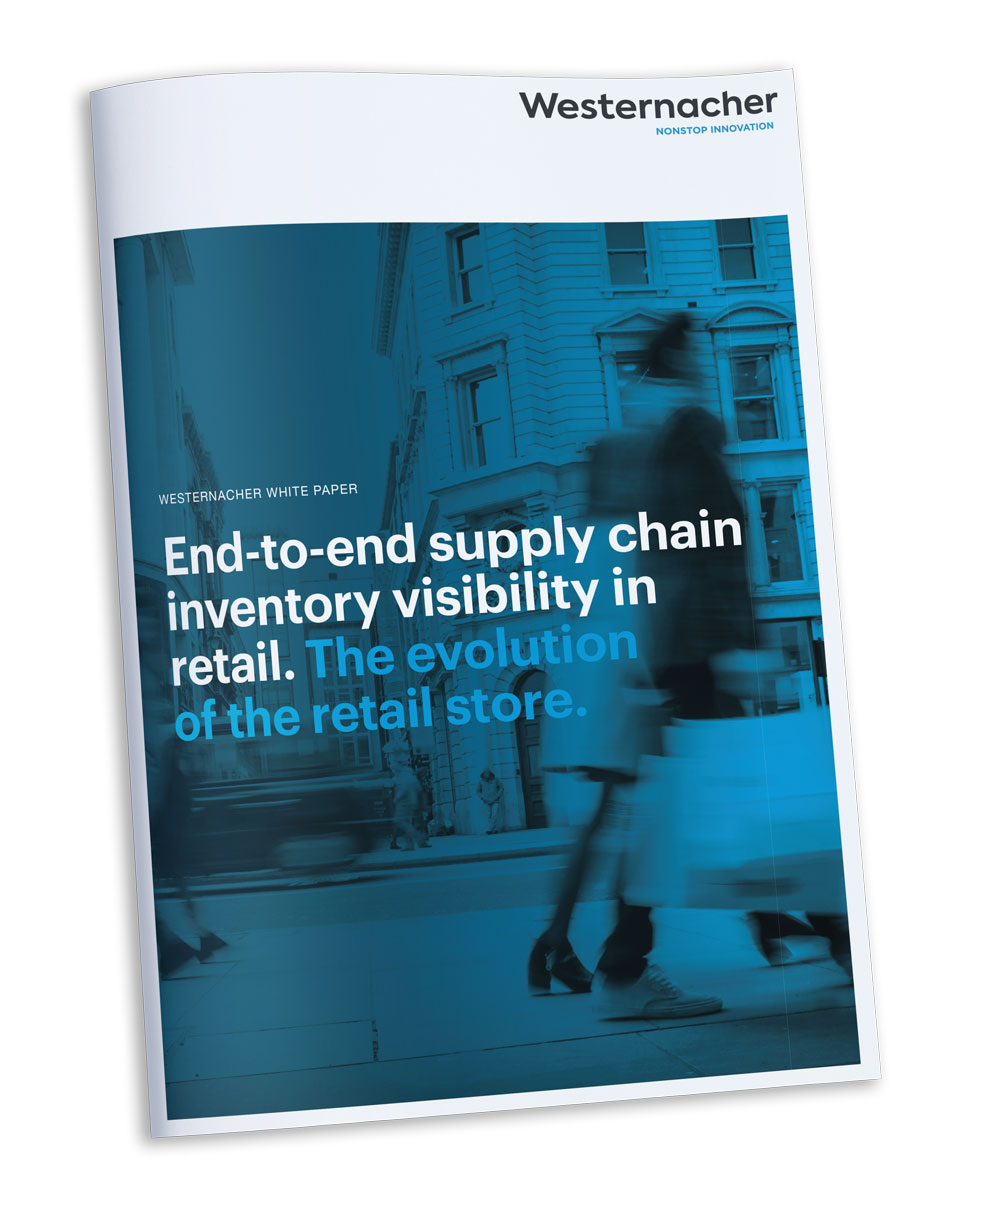 Retail with Westernacher: End-to-end supply chain inventory visibility in retail. The evolution of the retail store. Download our White paper.